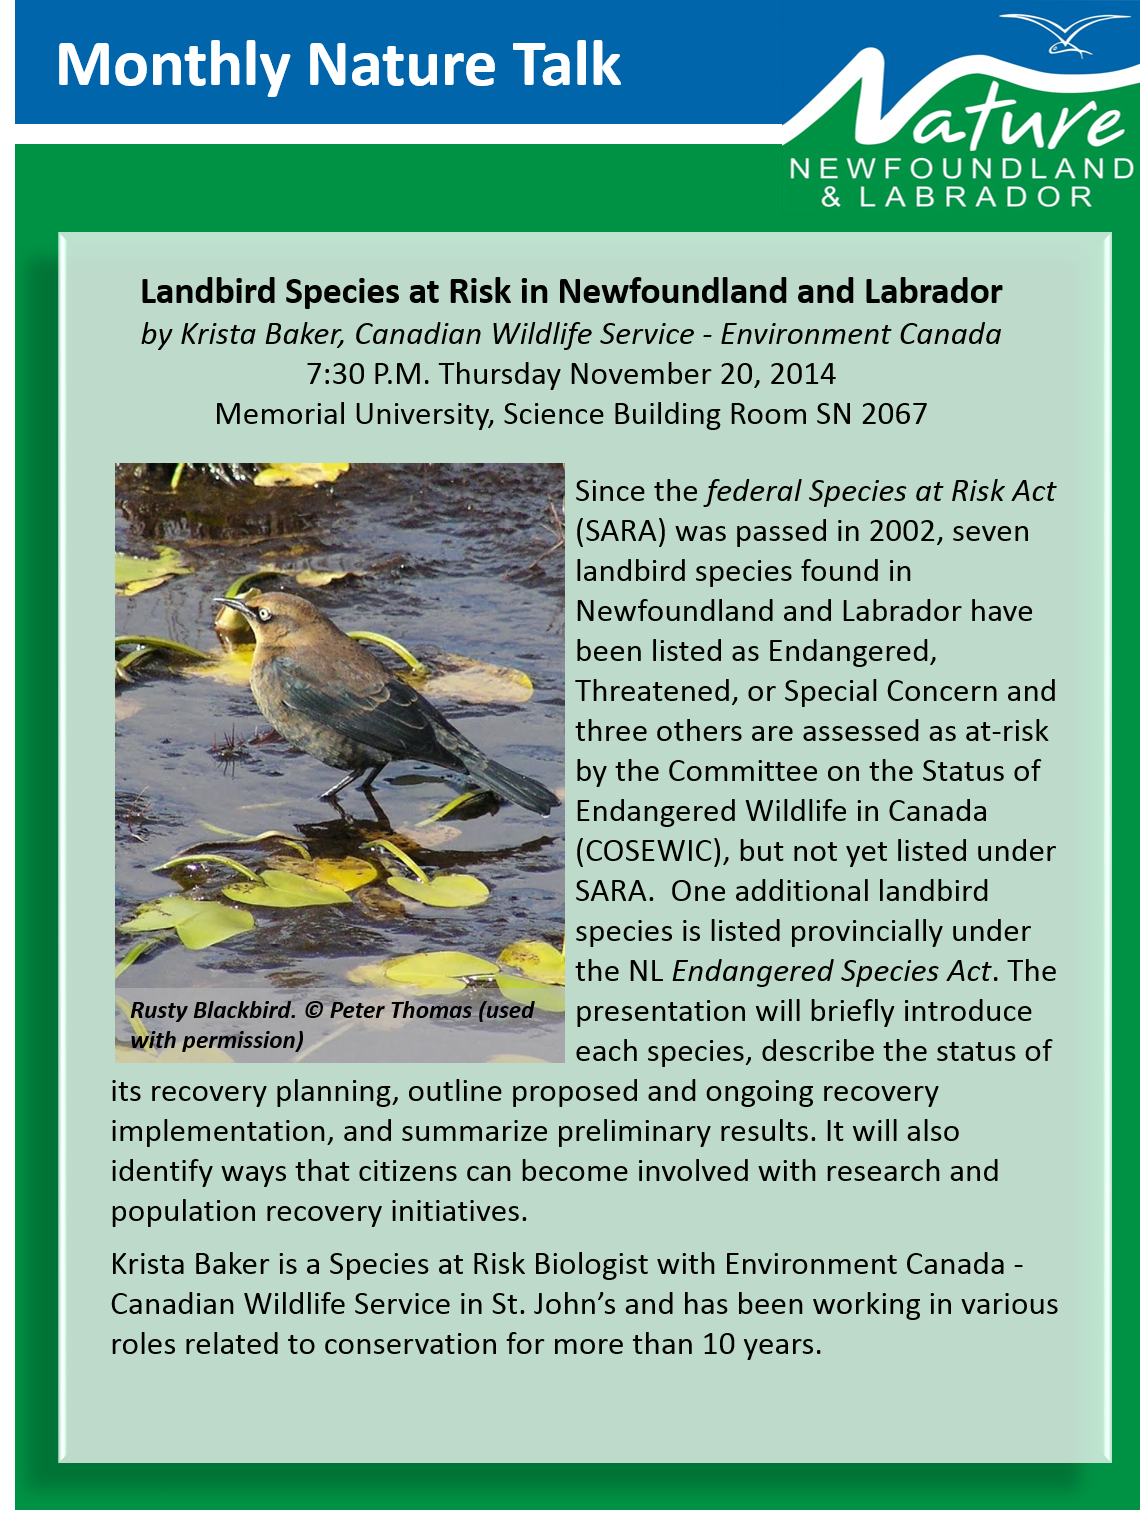 November Talk: Landbird Species at Risk